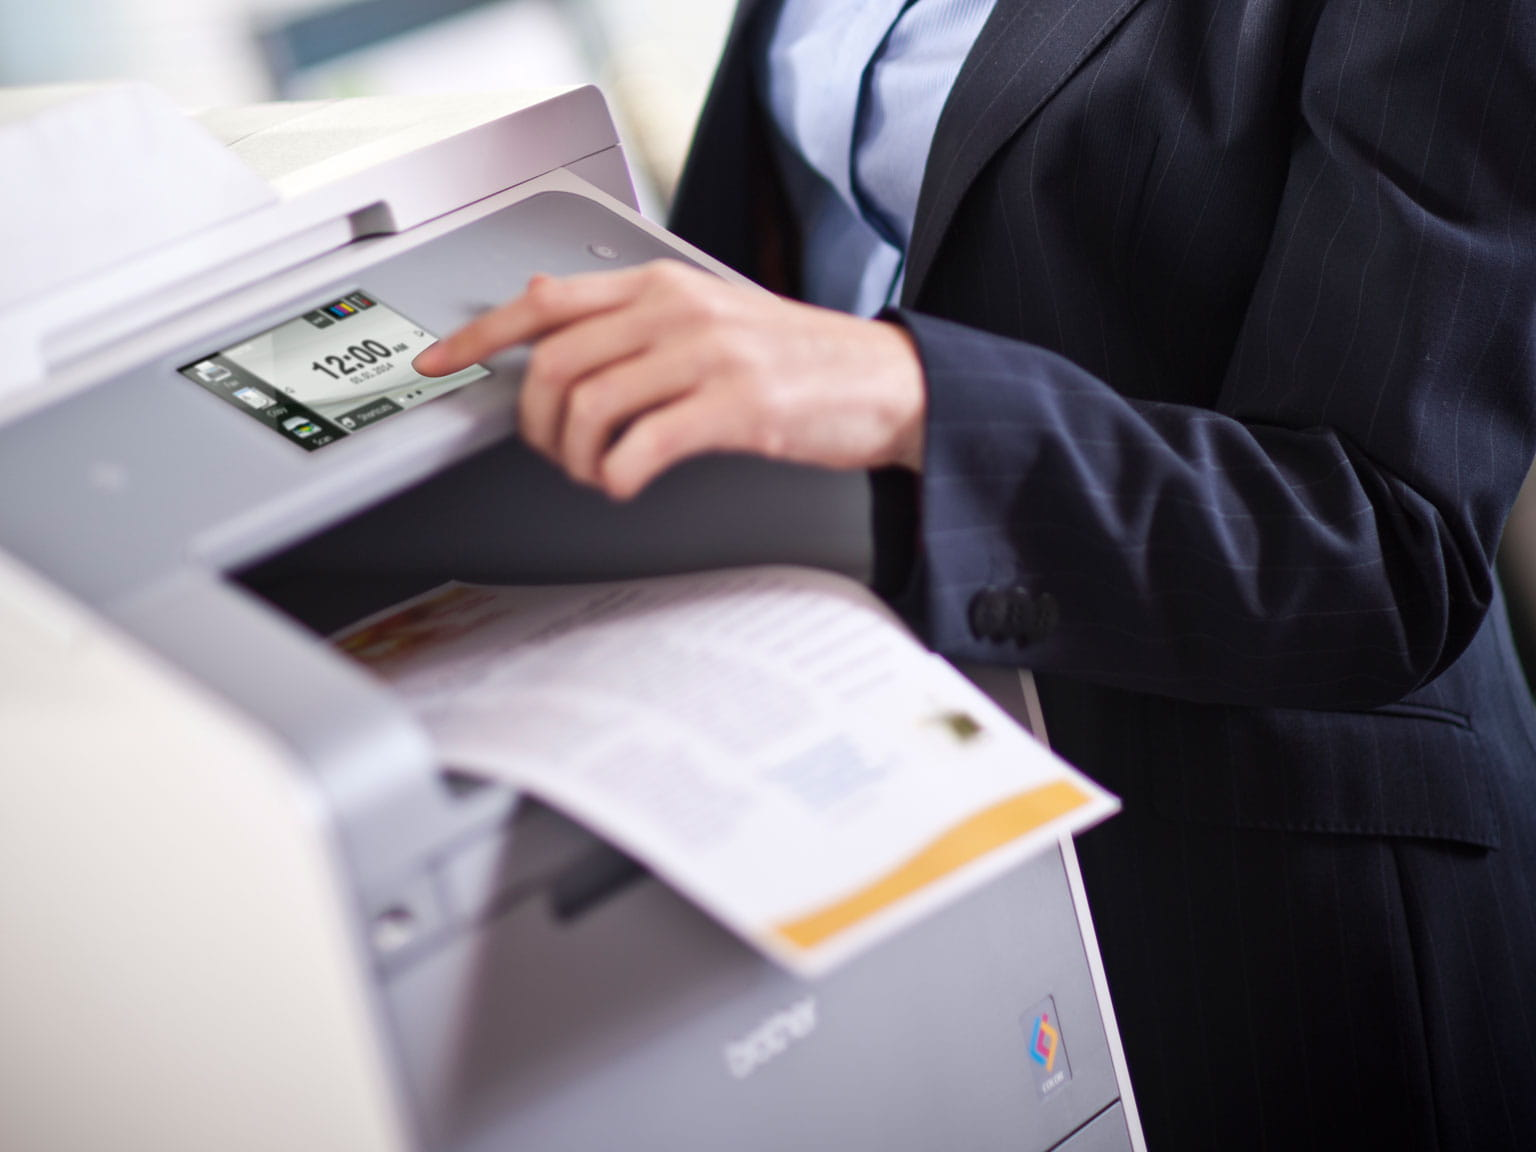 Person using a Brother printer